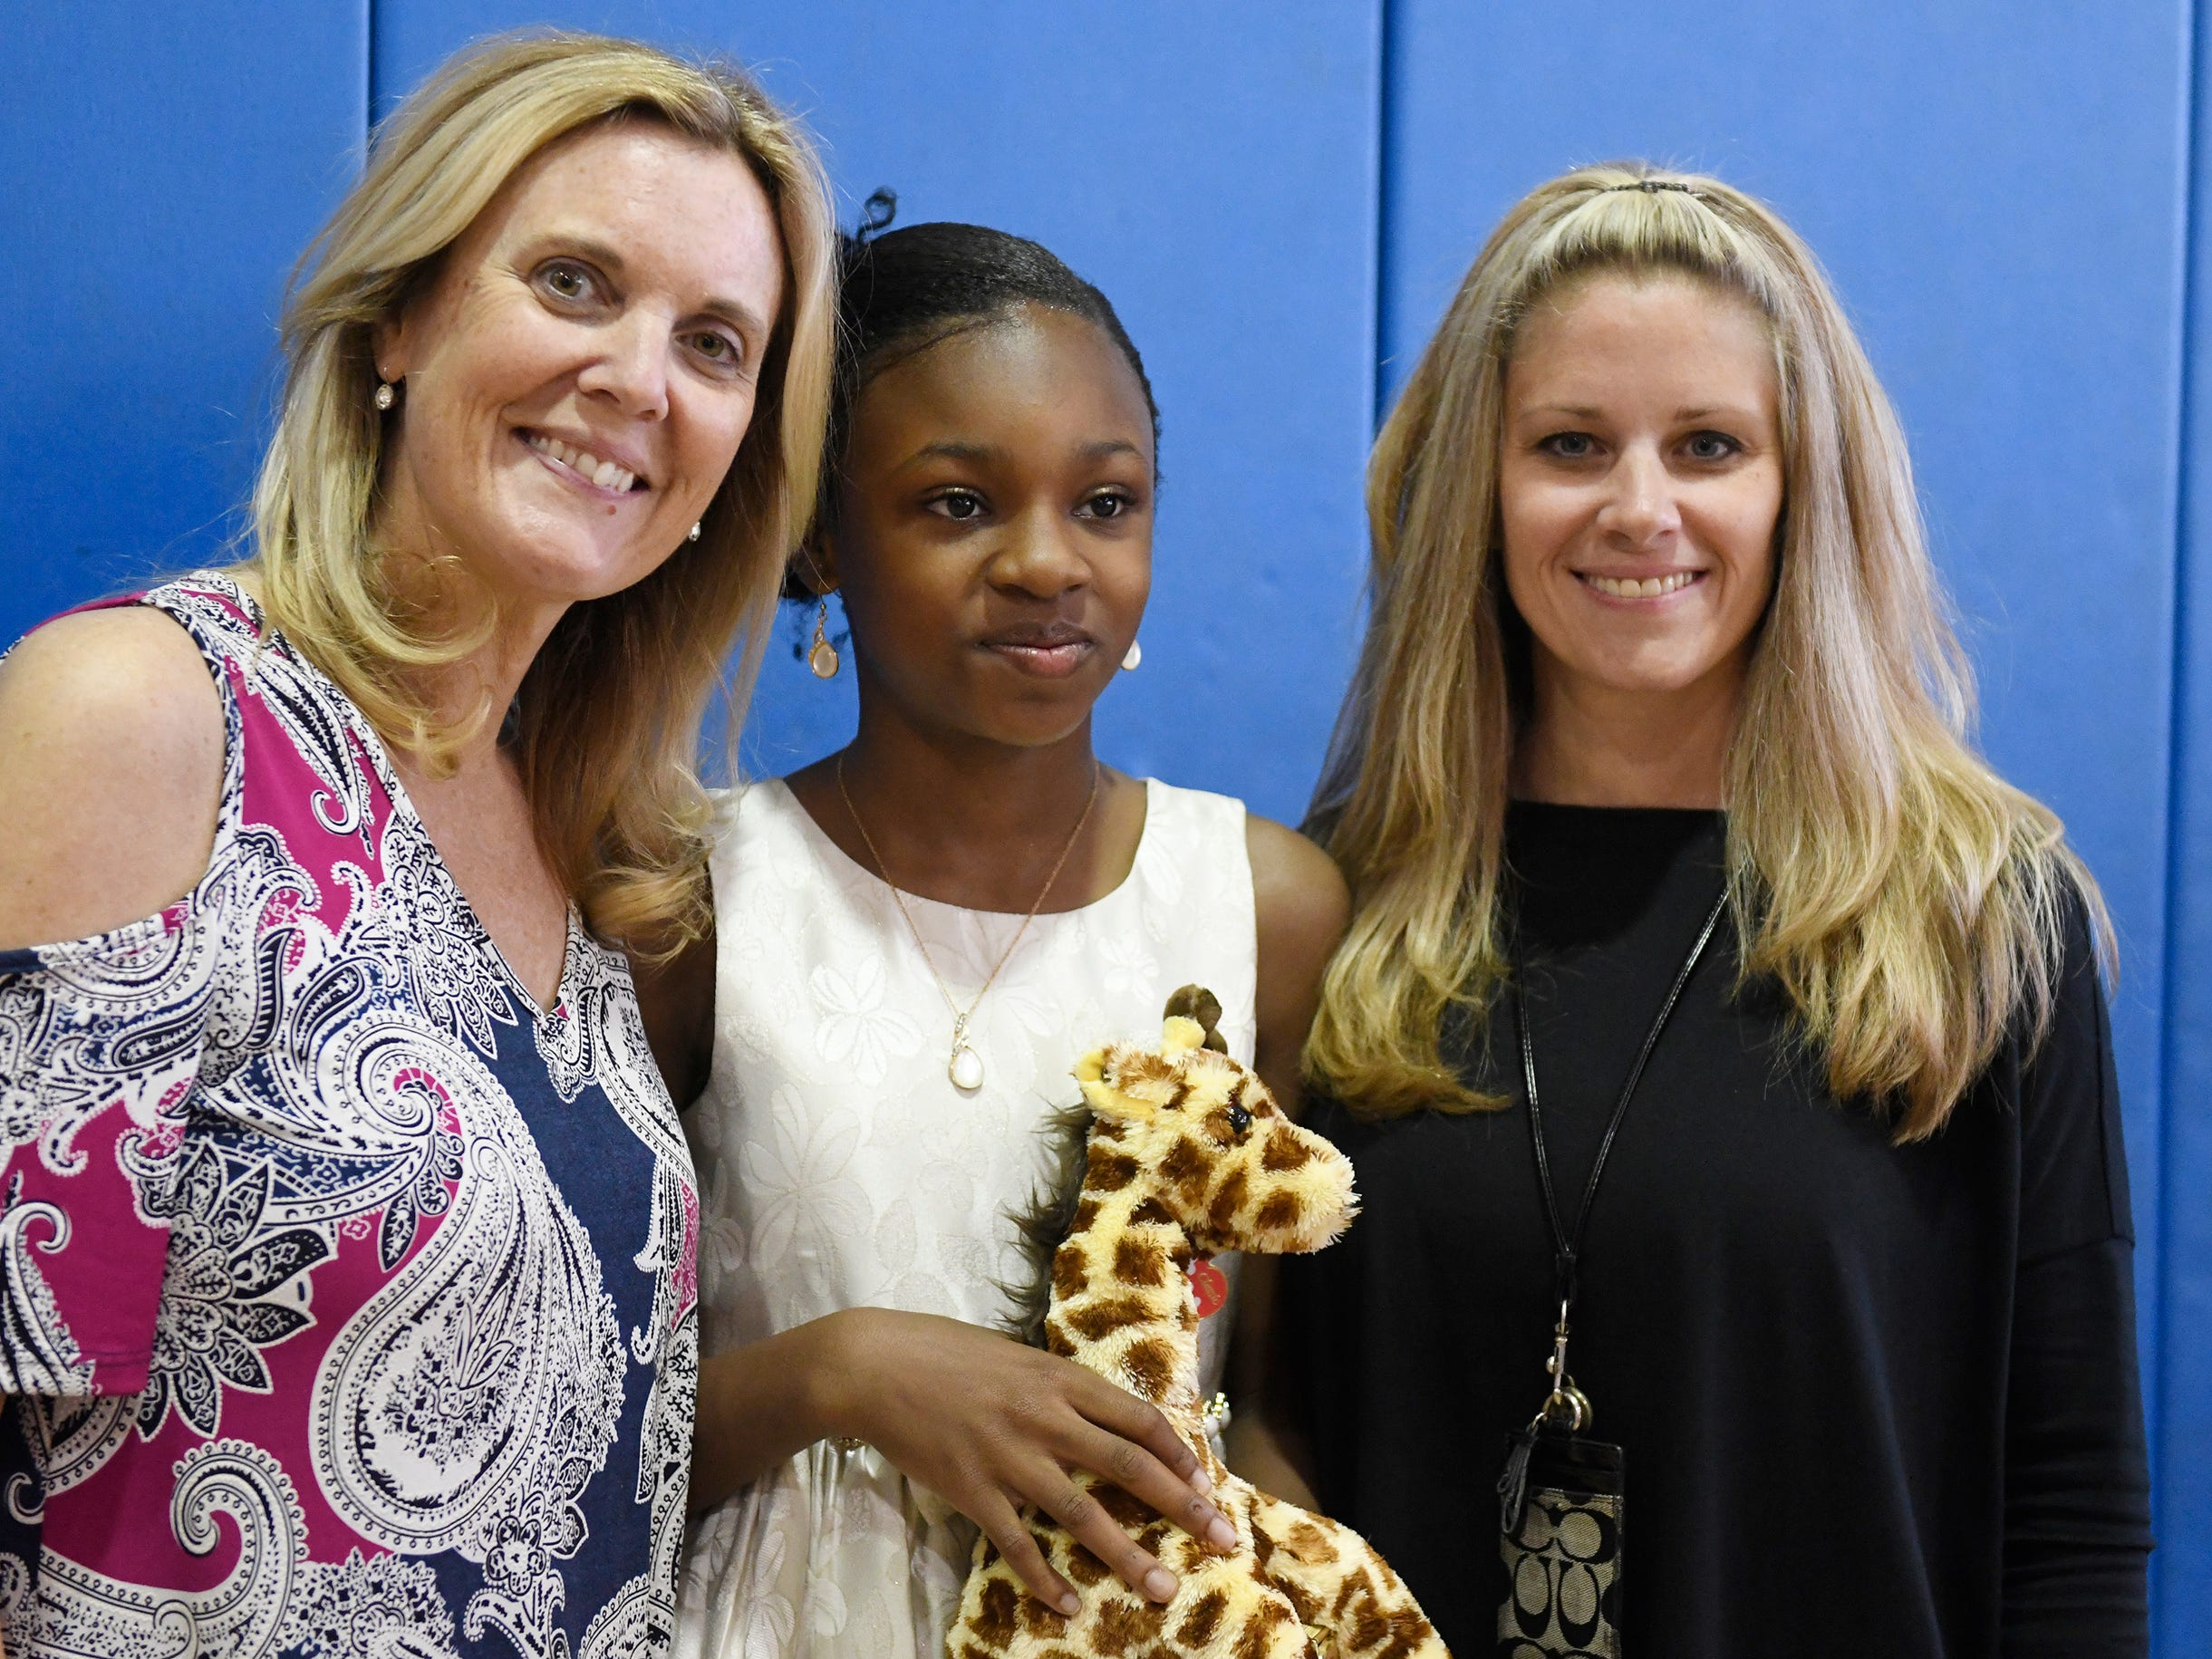 """Sabater Elementary School student Oluwatomisin """"Michelle"""" Akinyoade was presented with a Giraffe Hero Award during a special ceremony on Wednesday, May 15, 2019."""